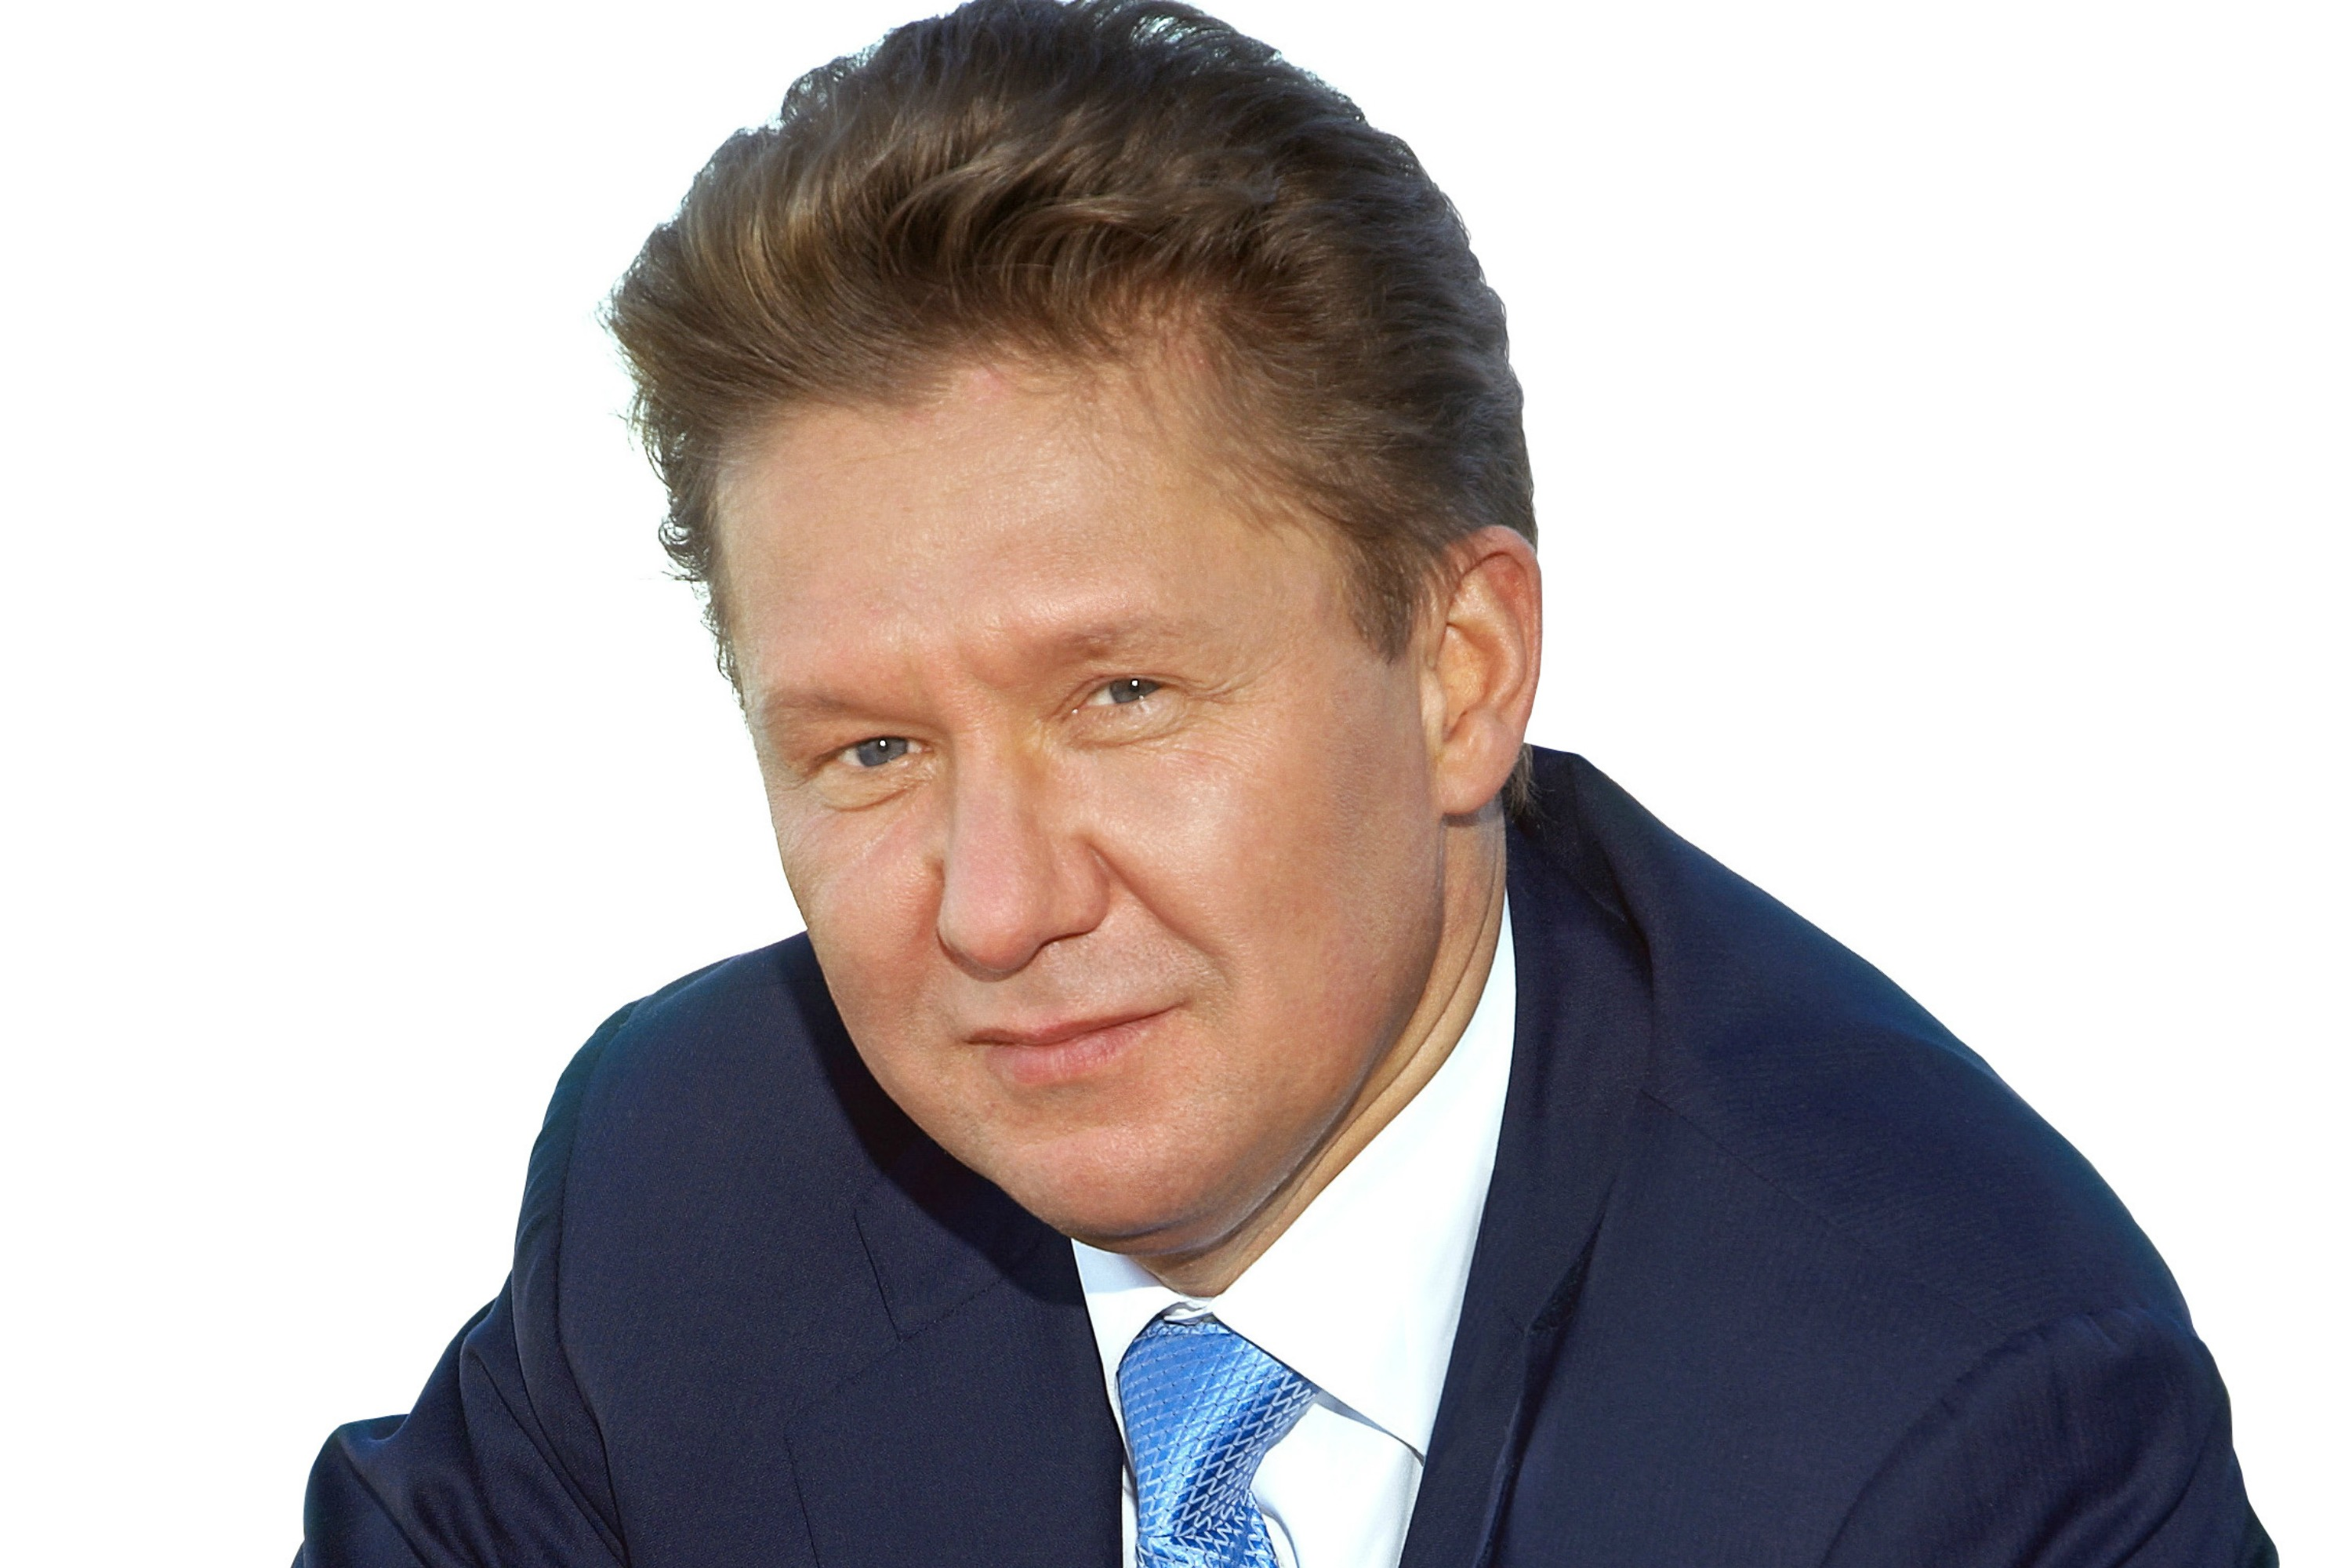 Gazprom's CEO Alexei Miller. Photo: Gazprom's website